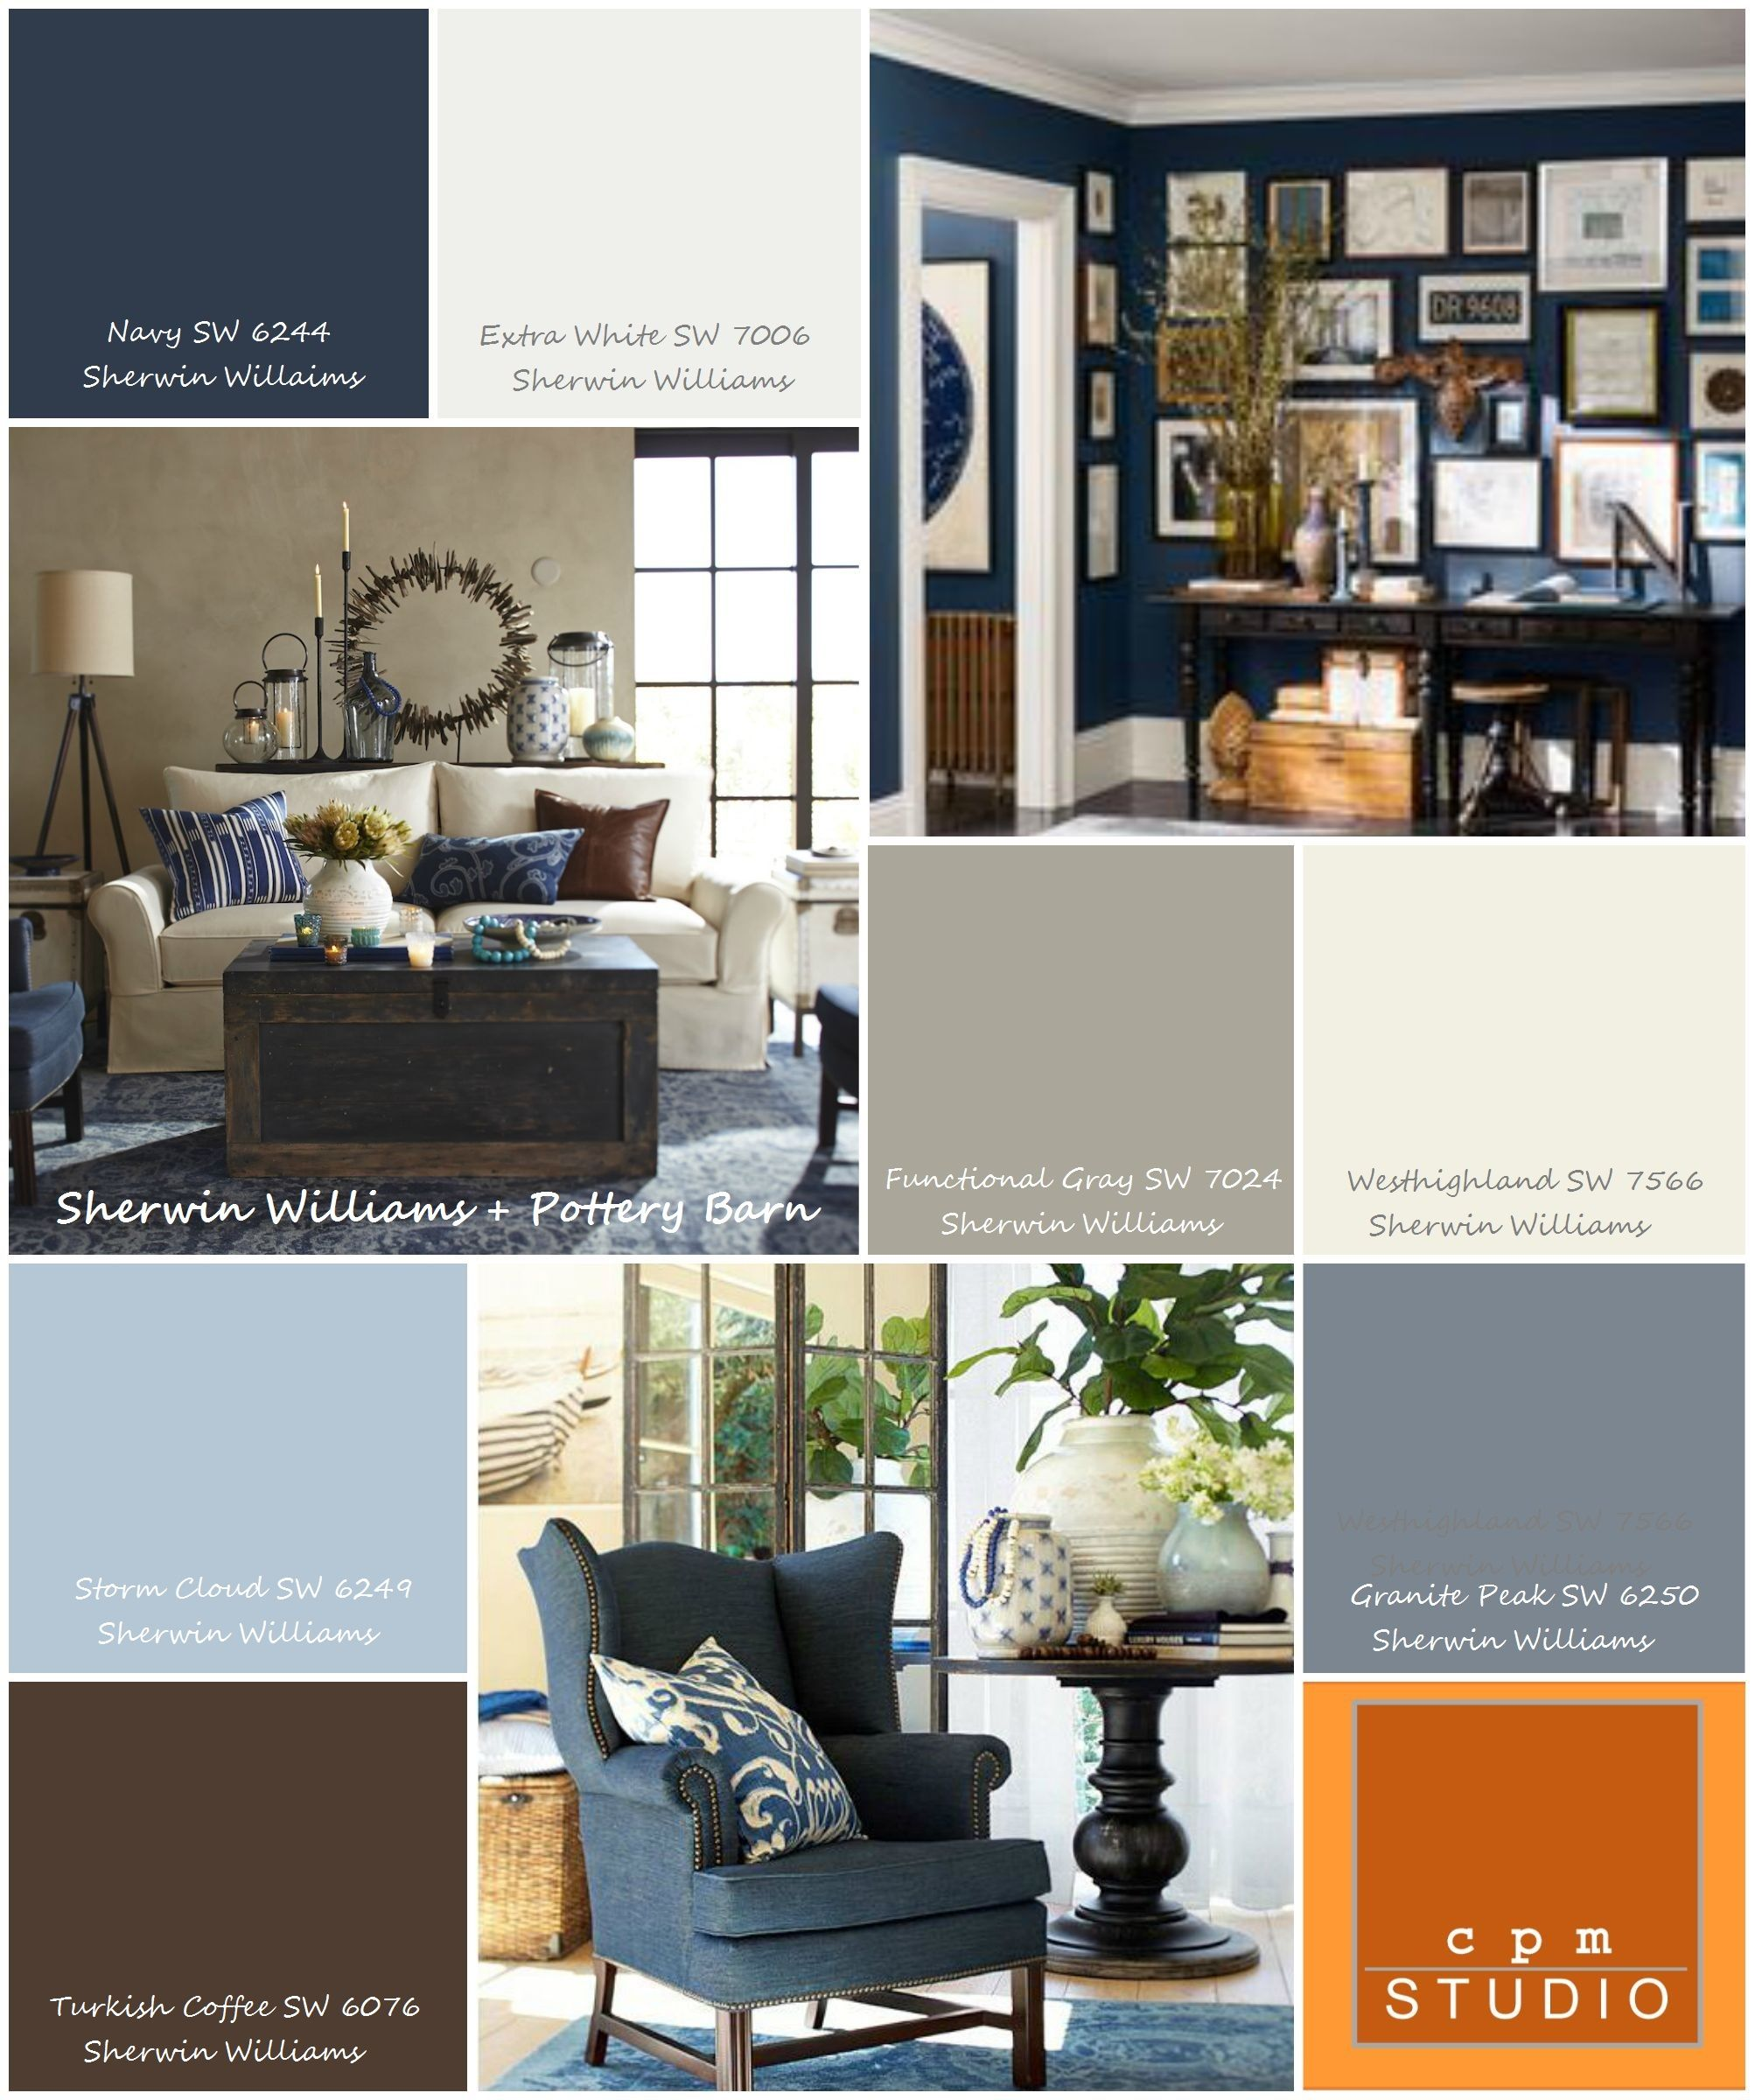 Sherwin williams paint colors sherwin williams 6249 storm cloud - Try Pairing Sherwin Williams Paint Colors Like Naval Sw 6244 Functional Gray Sw 7024 Or Storm Cloud Sw 6249 To Complete The Look Of